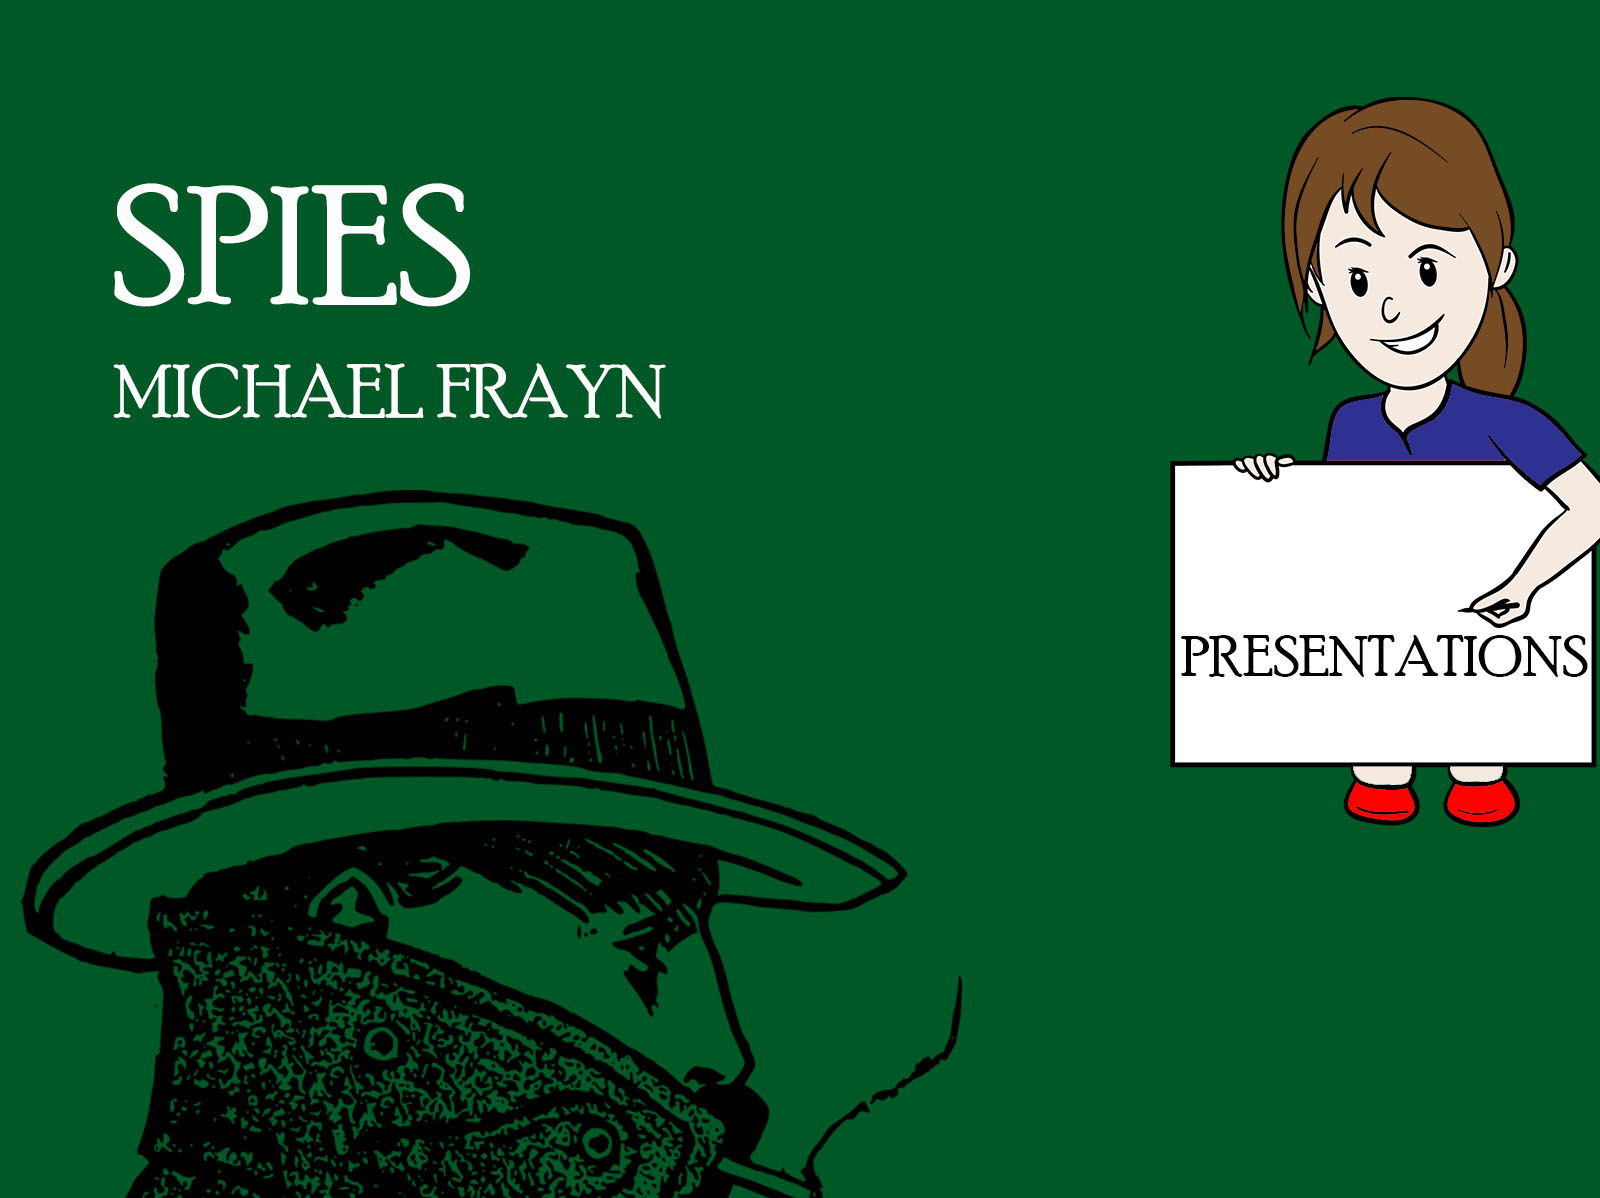 'Spies' - Michael Frayn - Chapter 1 Bundle